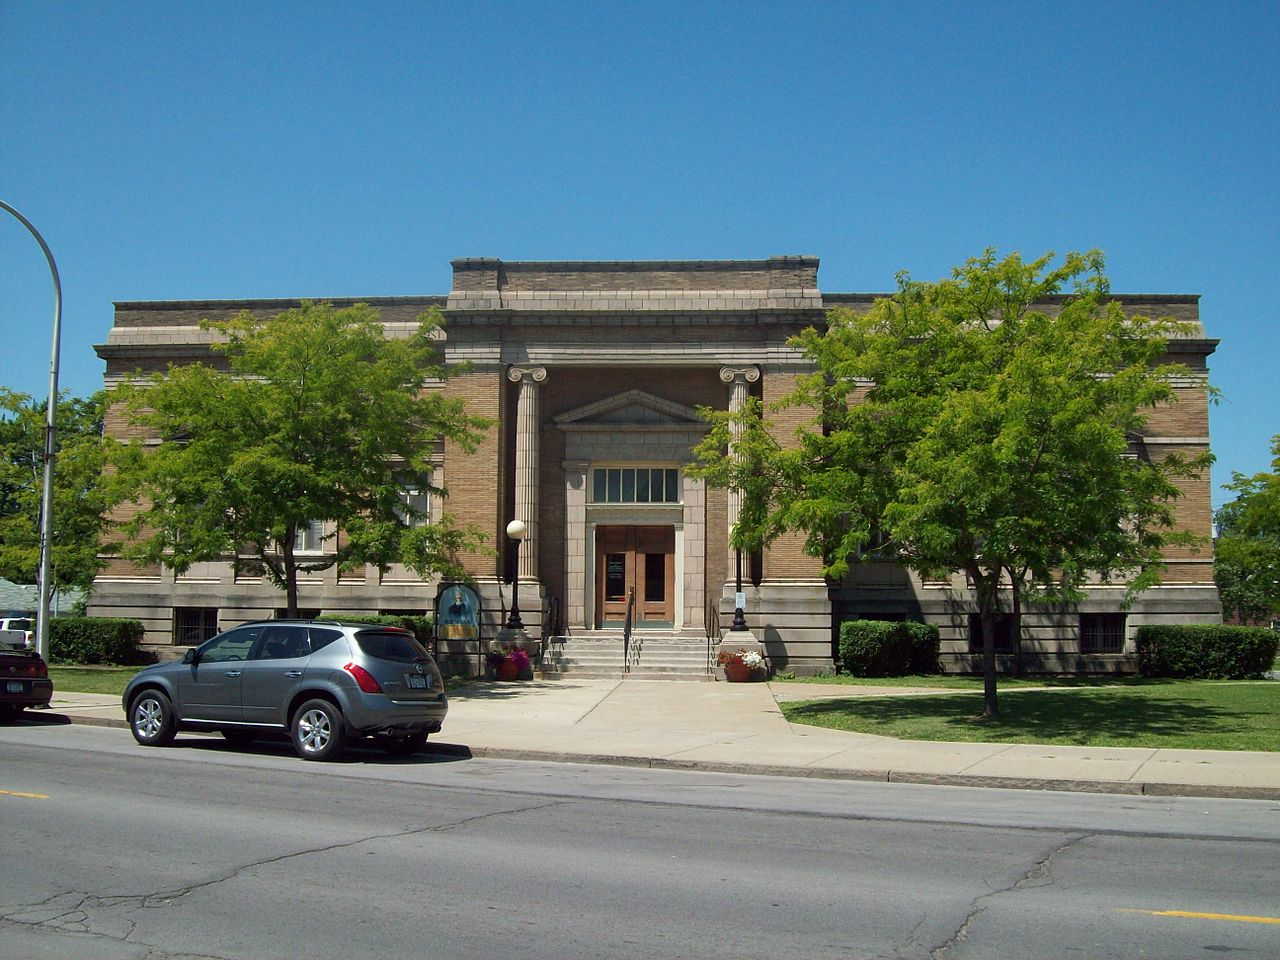 The former Niagara Falls Public Library building was erected in 1904.